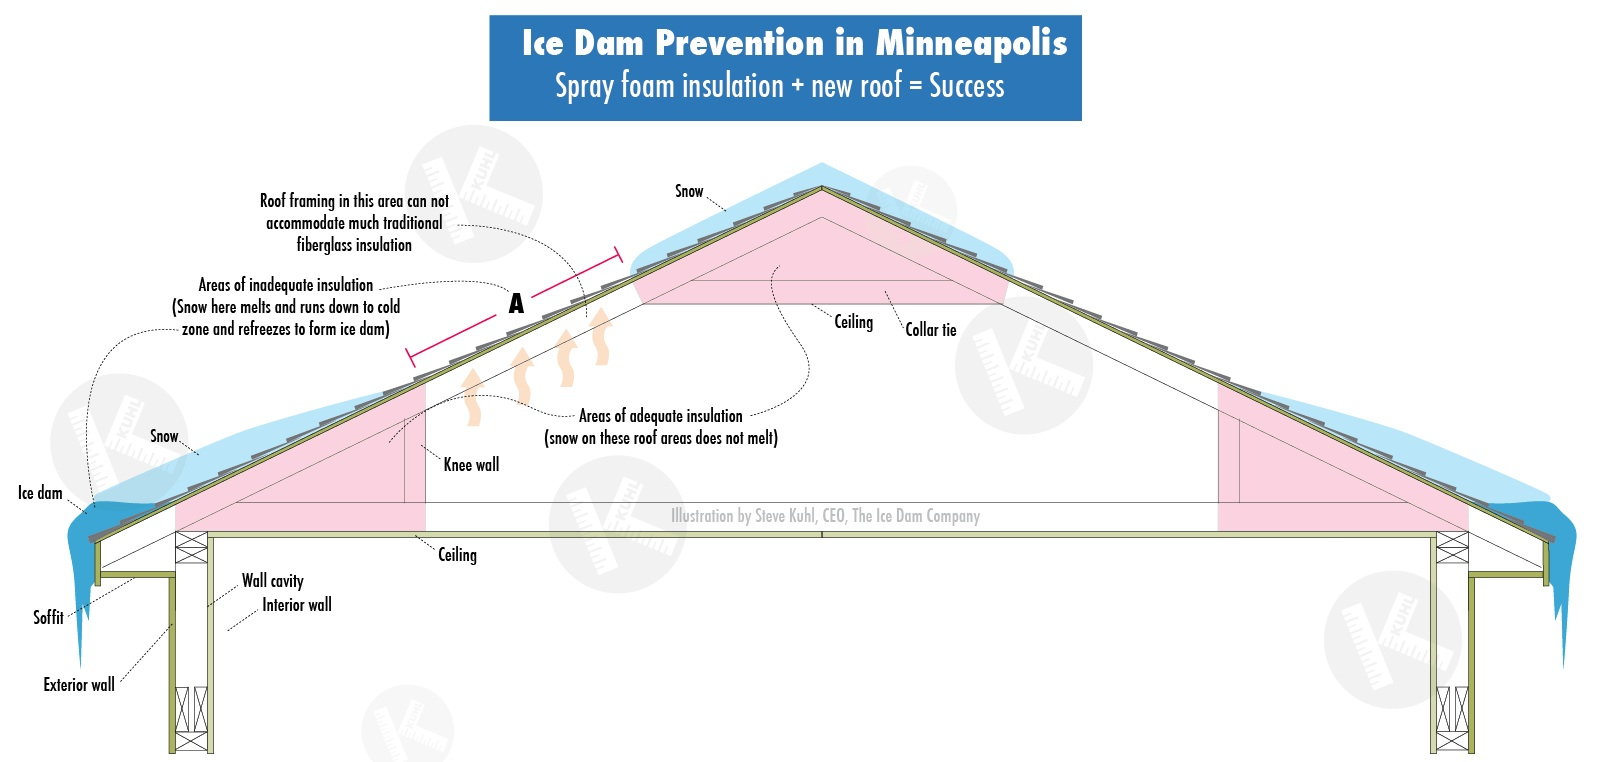 Minneapolis Ice Dam Prevention